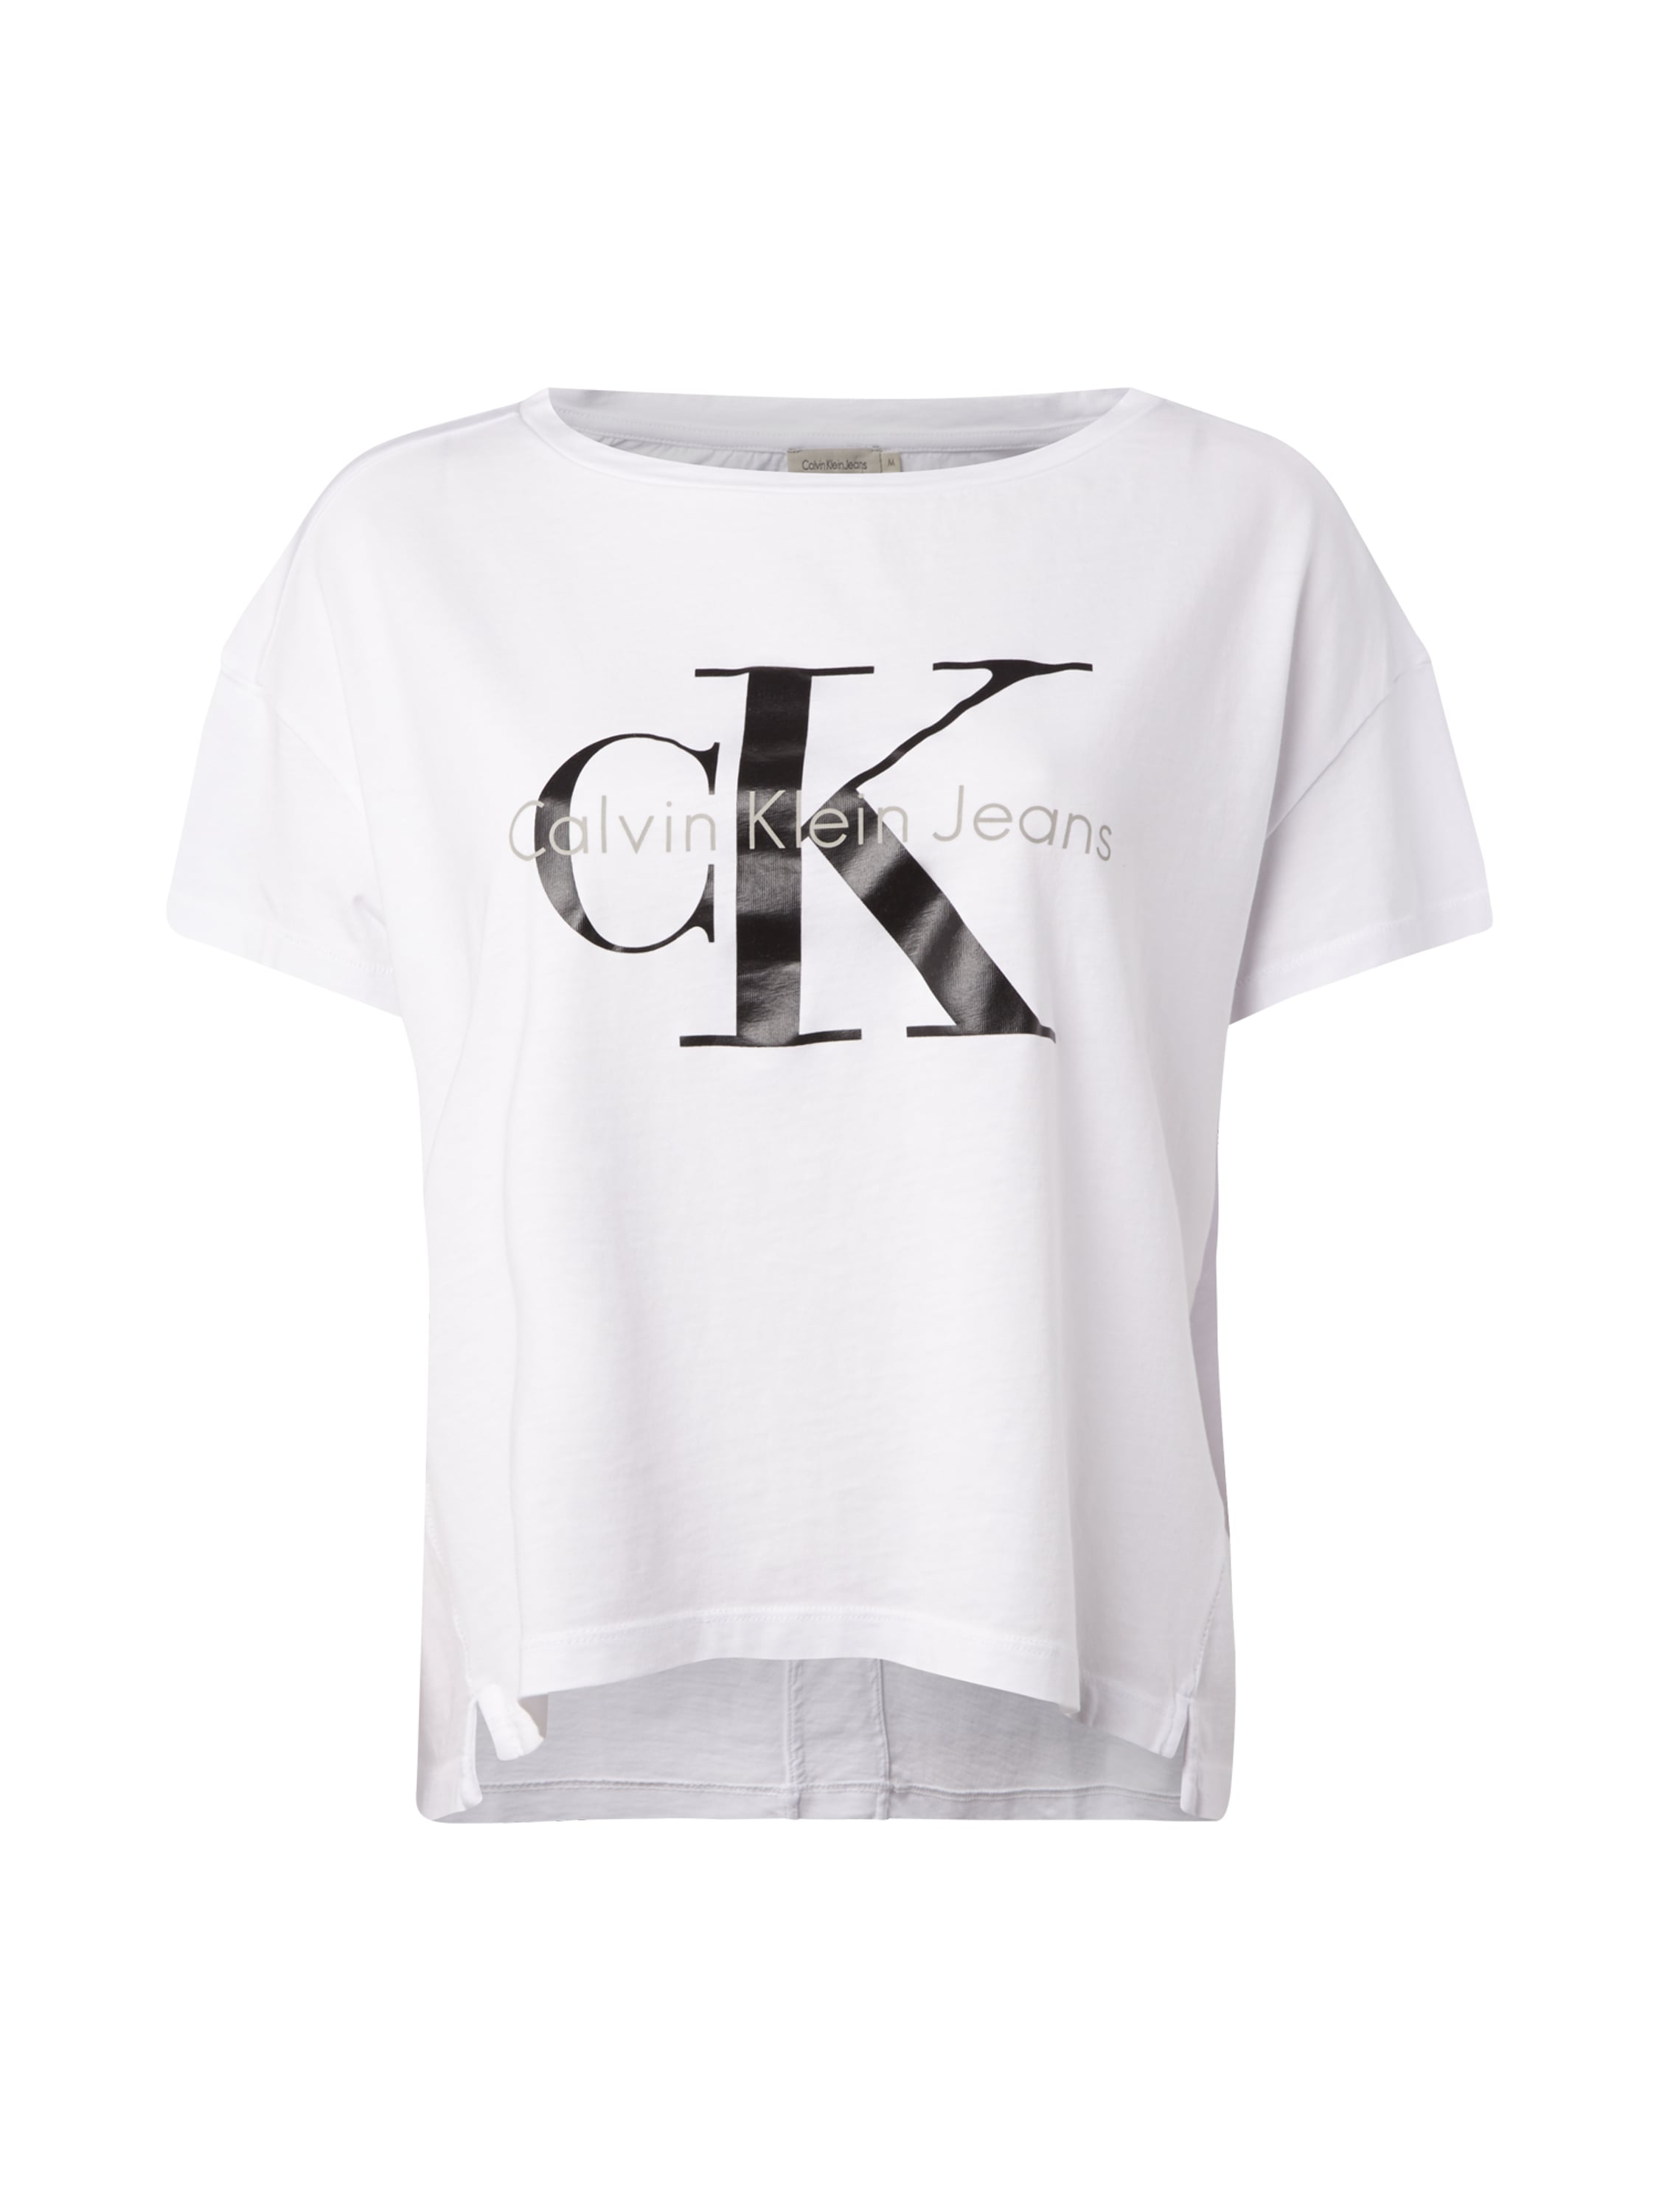 calvin klein jeans crop shirt mit logo print in wei. Black Bedroom Furniture Sets. Home Design Ideas